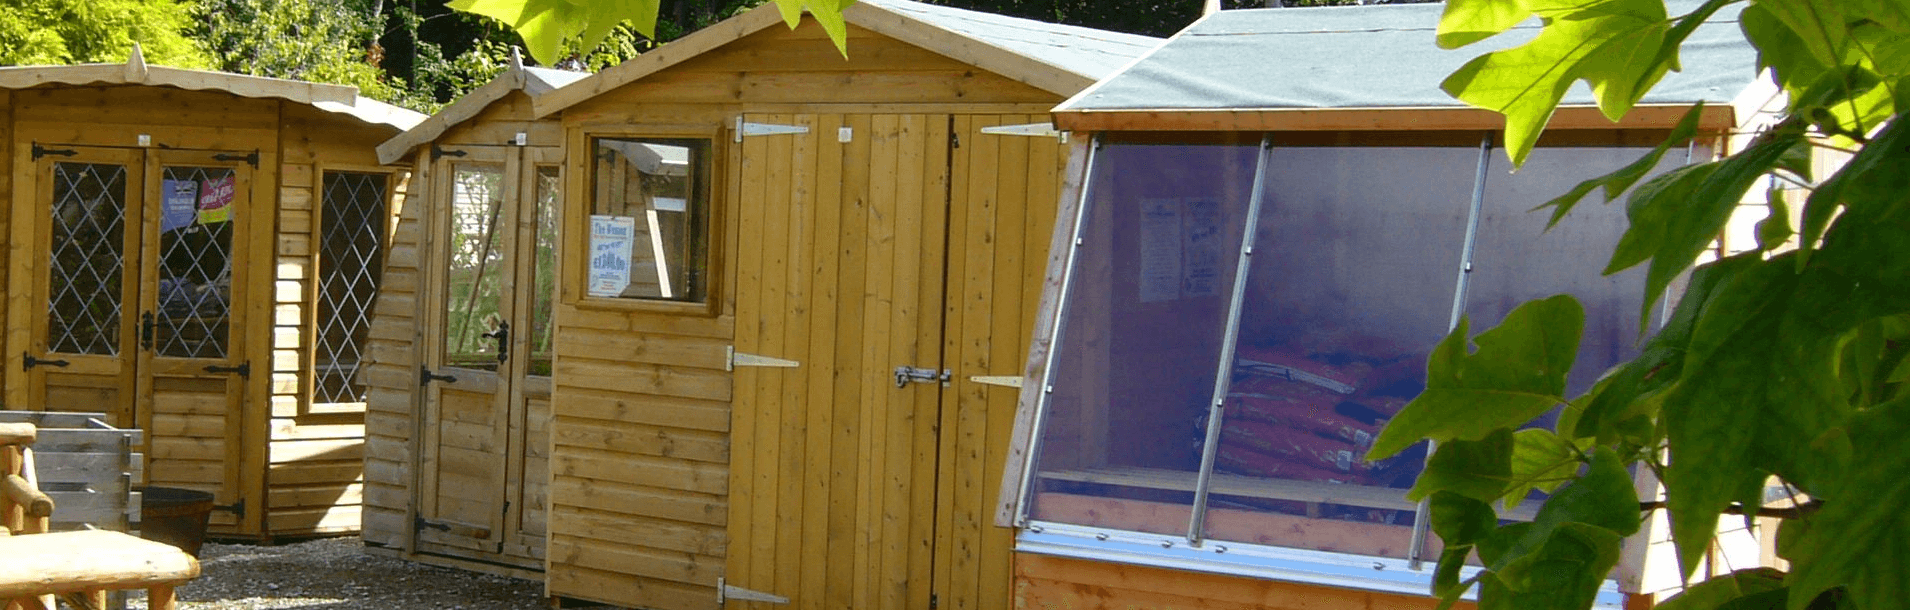 Sheds & Summerhouses from Carr Bank Garden Centre